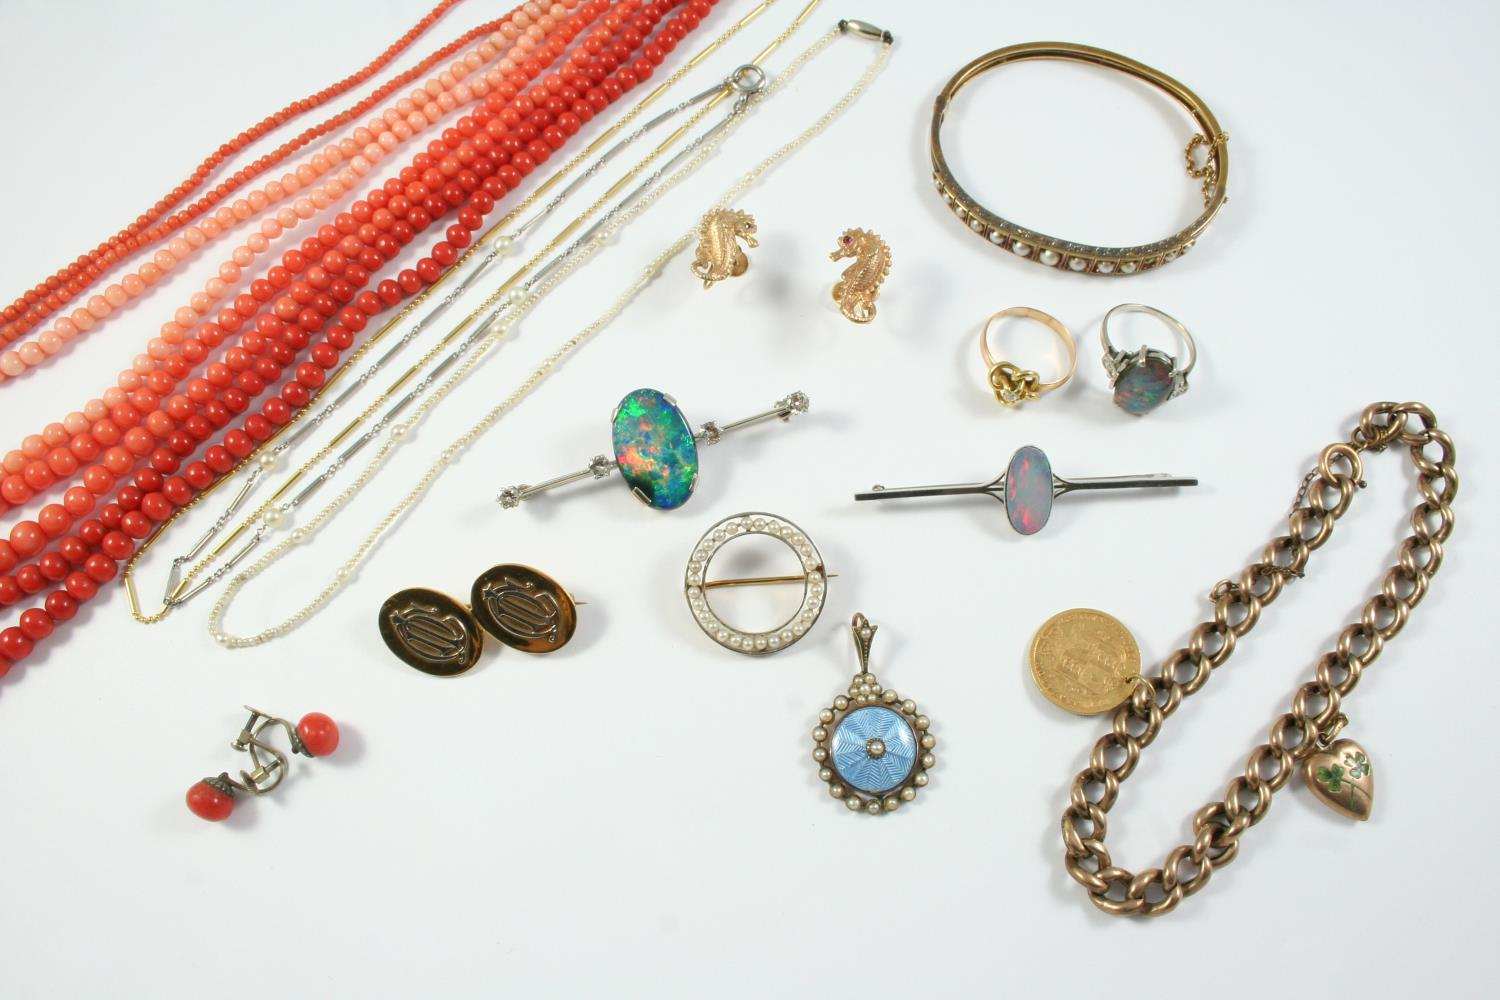 A QUANTITY OF JEWELLERY including three coral bead necklaces, a pair of coral earrings, a pair of